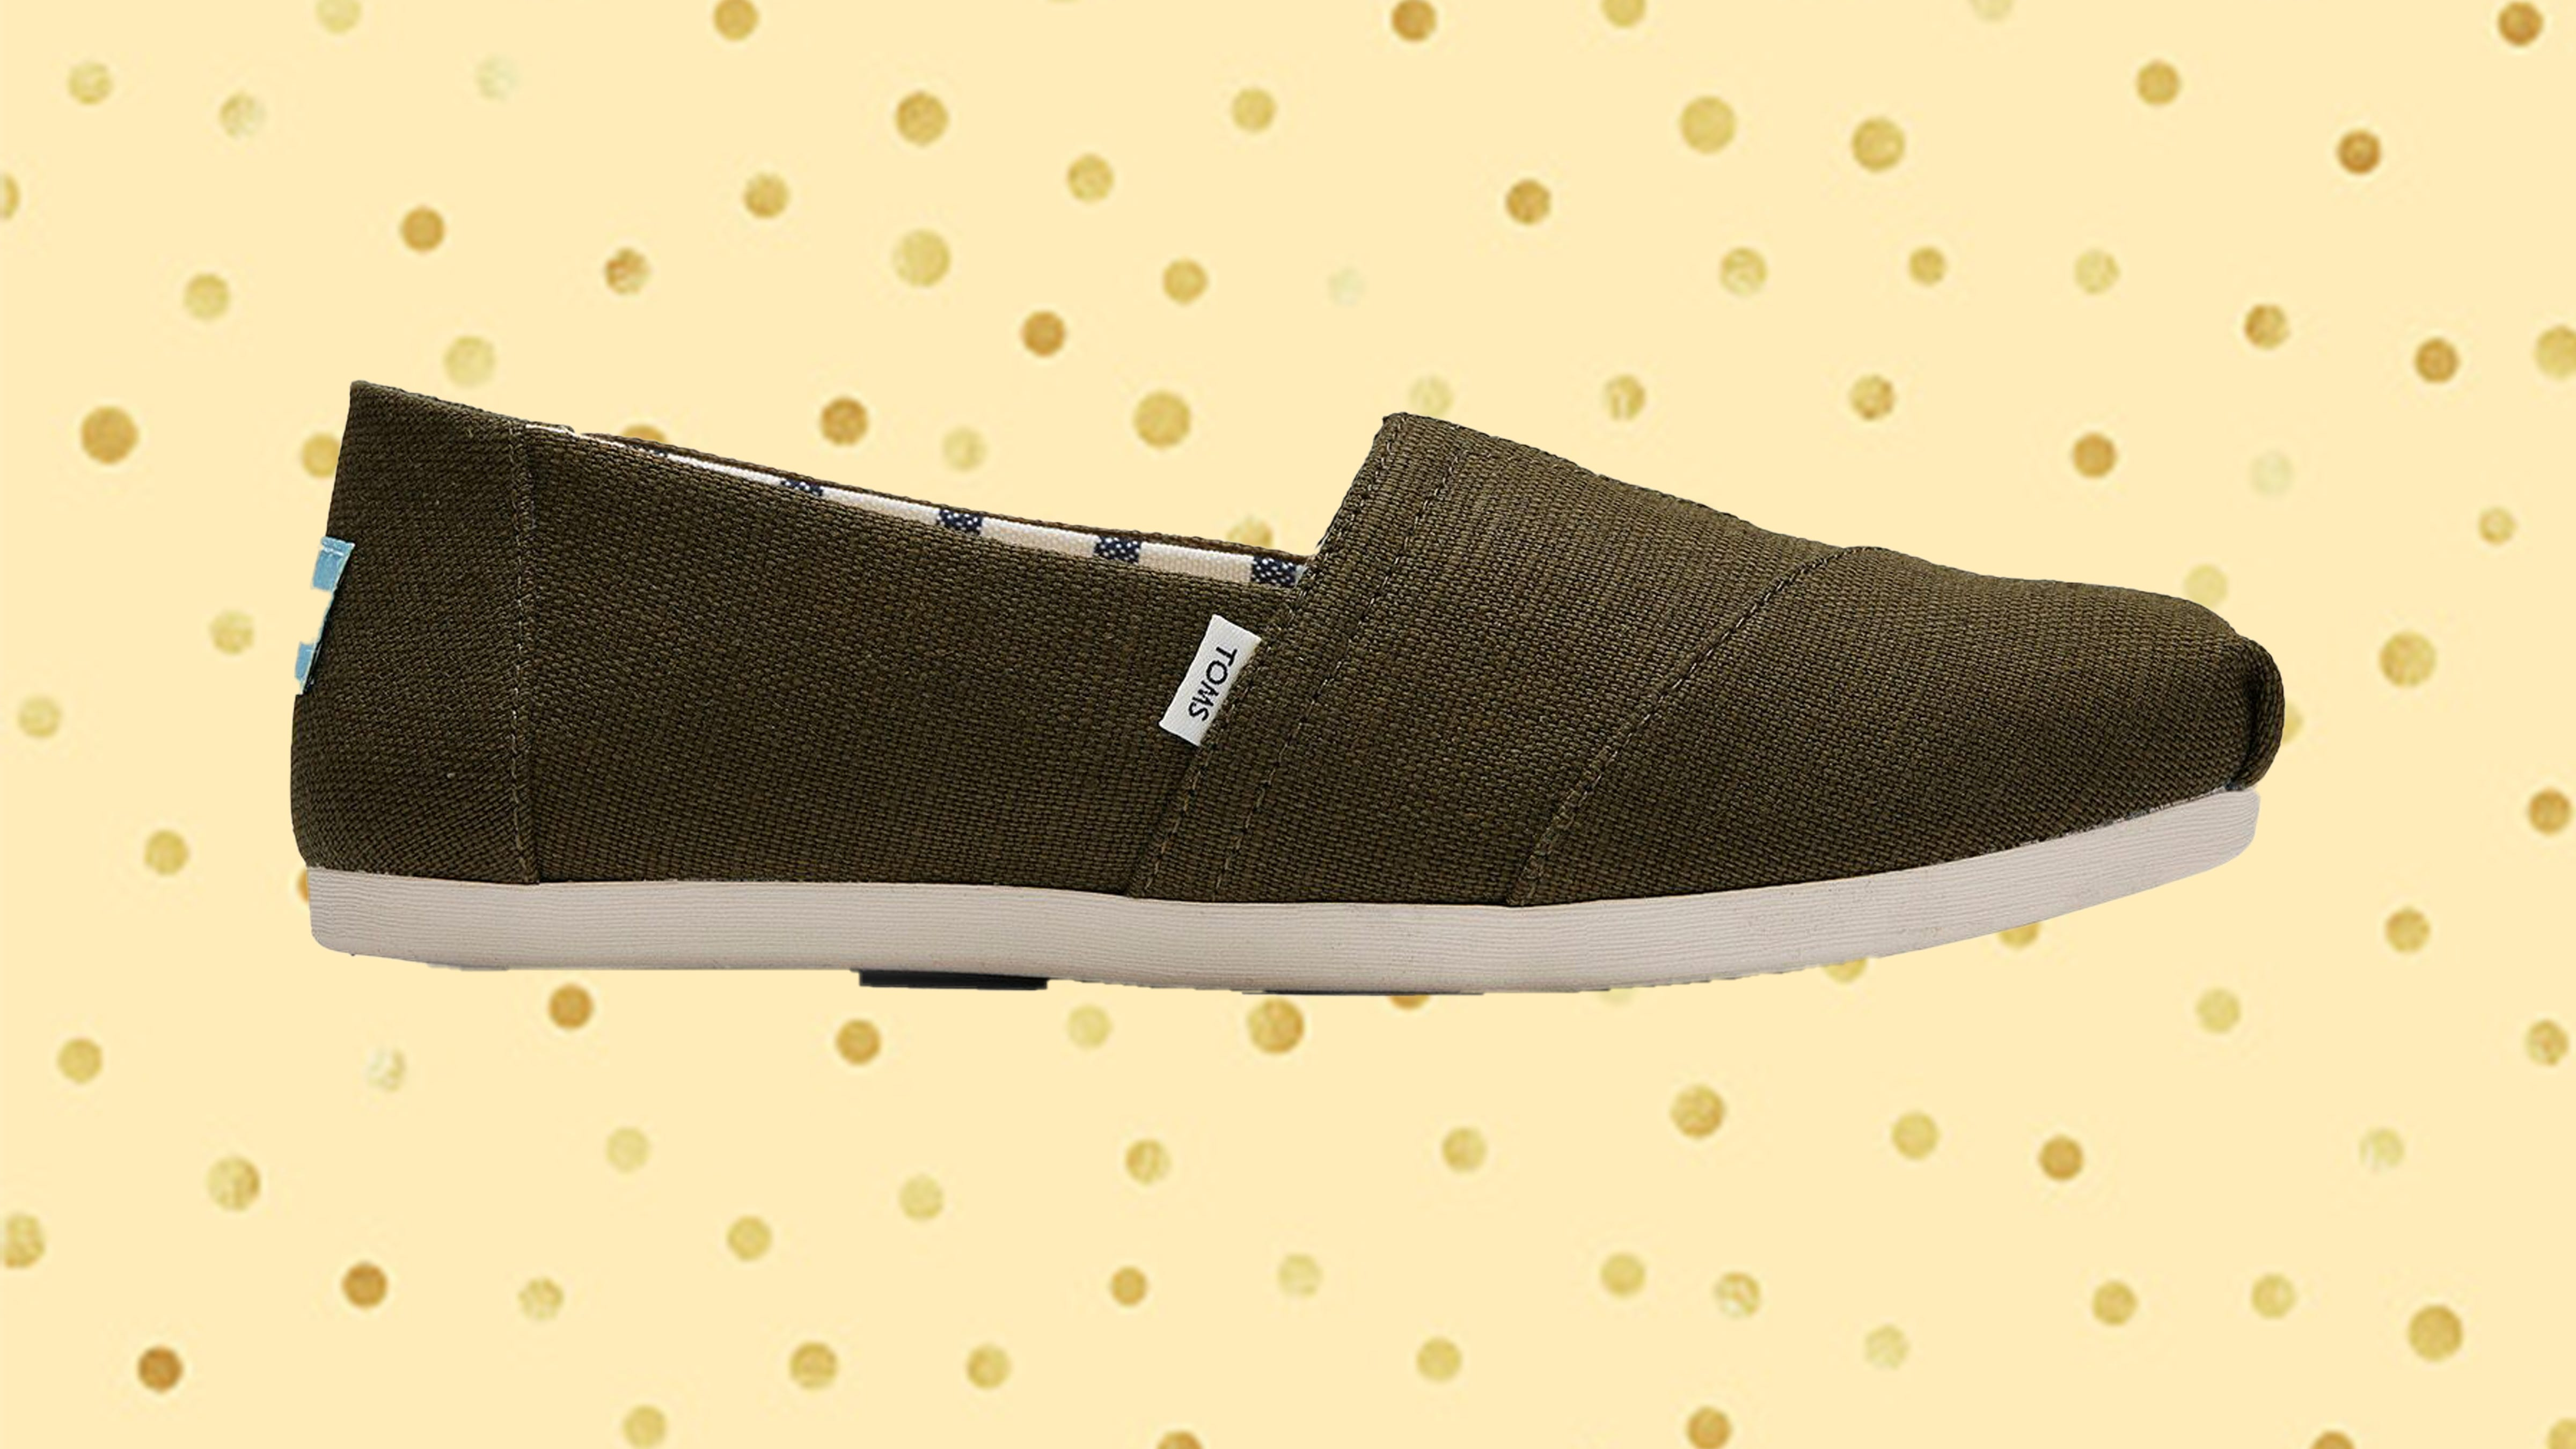 TOMS promo code: Get a discount on